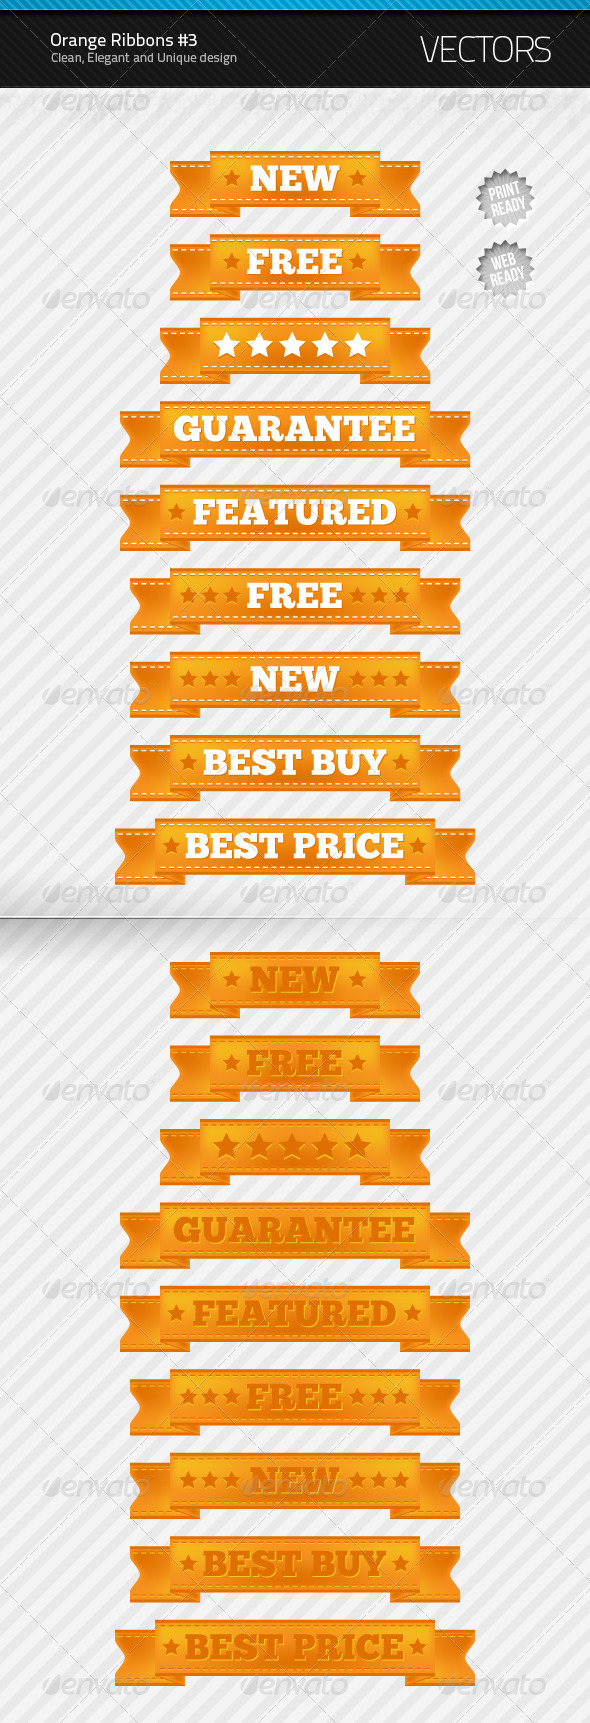 Orange Ribbons #3 - Decorative Vectors